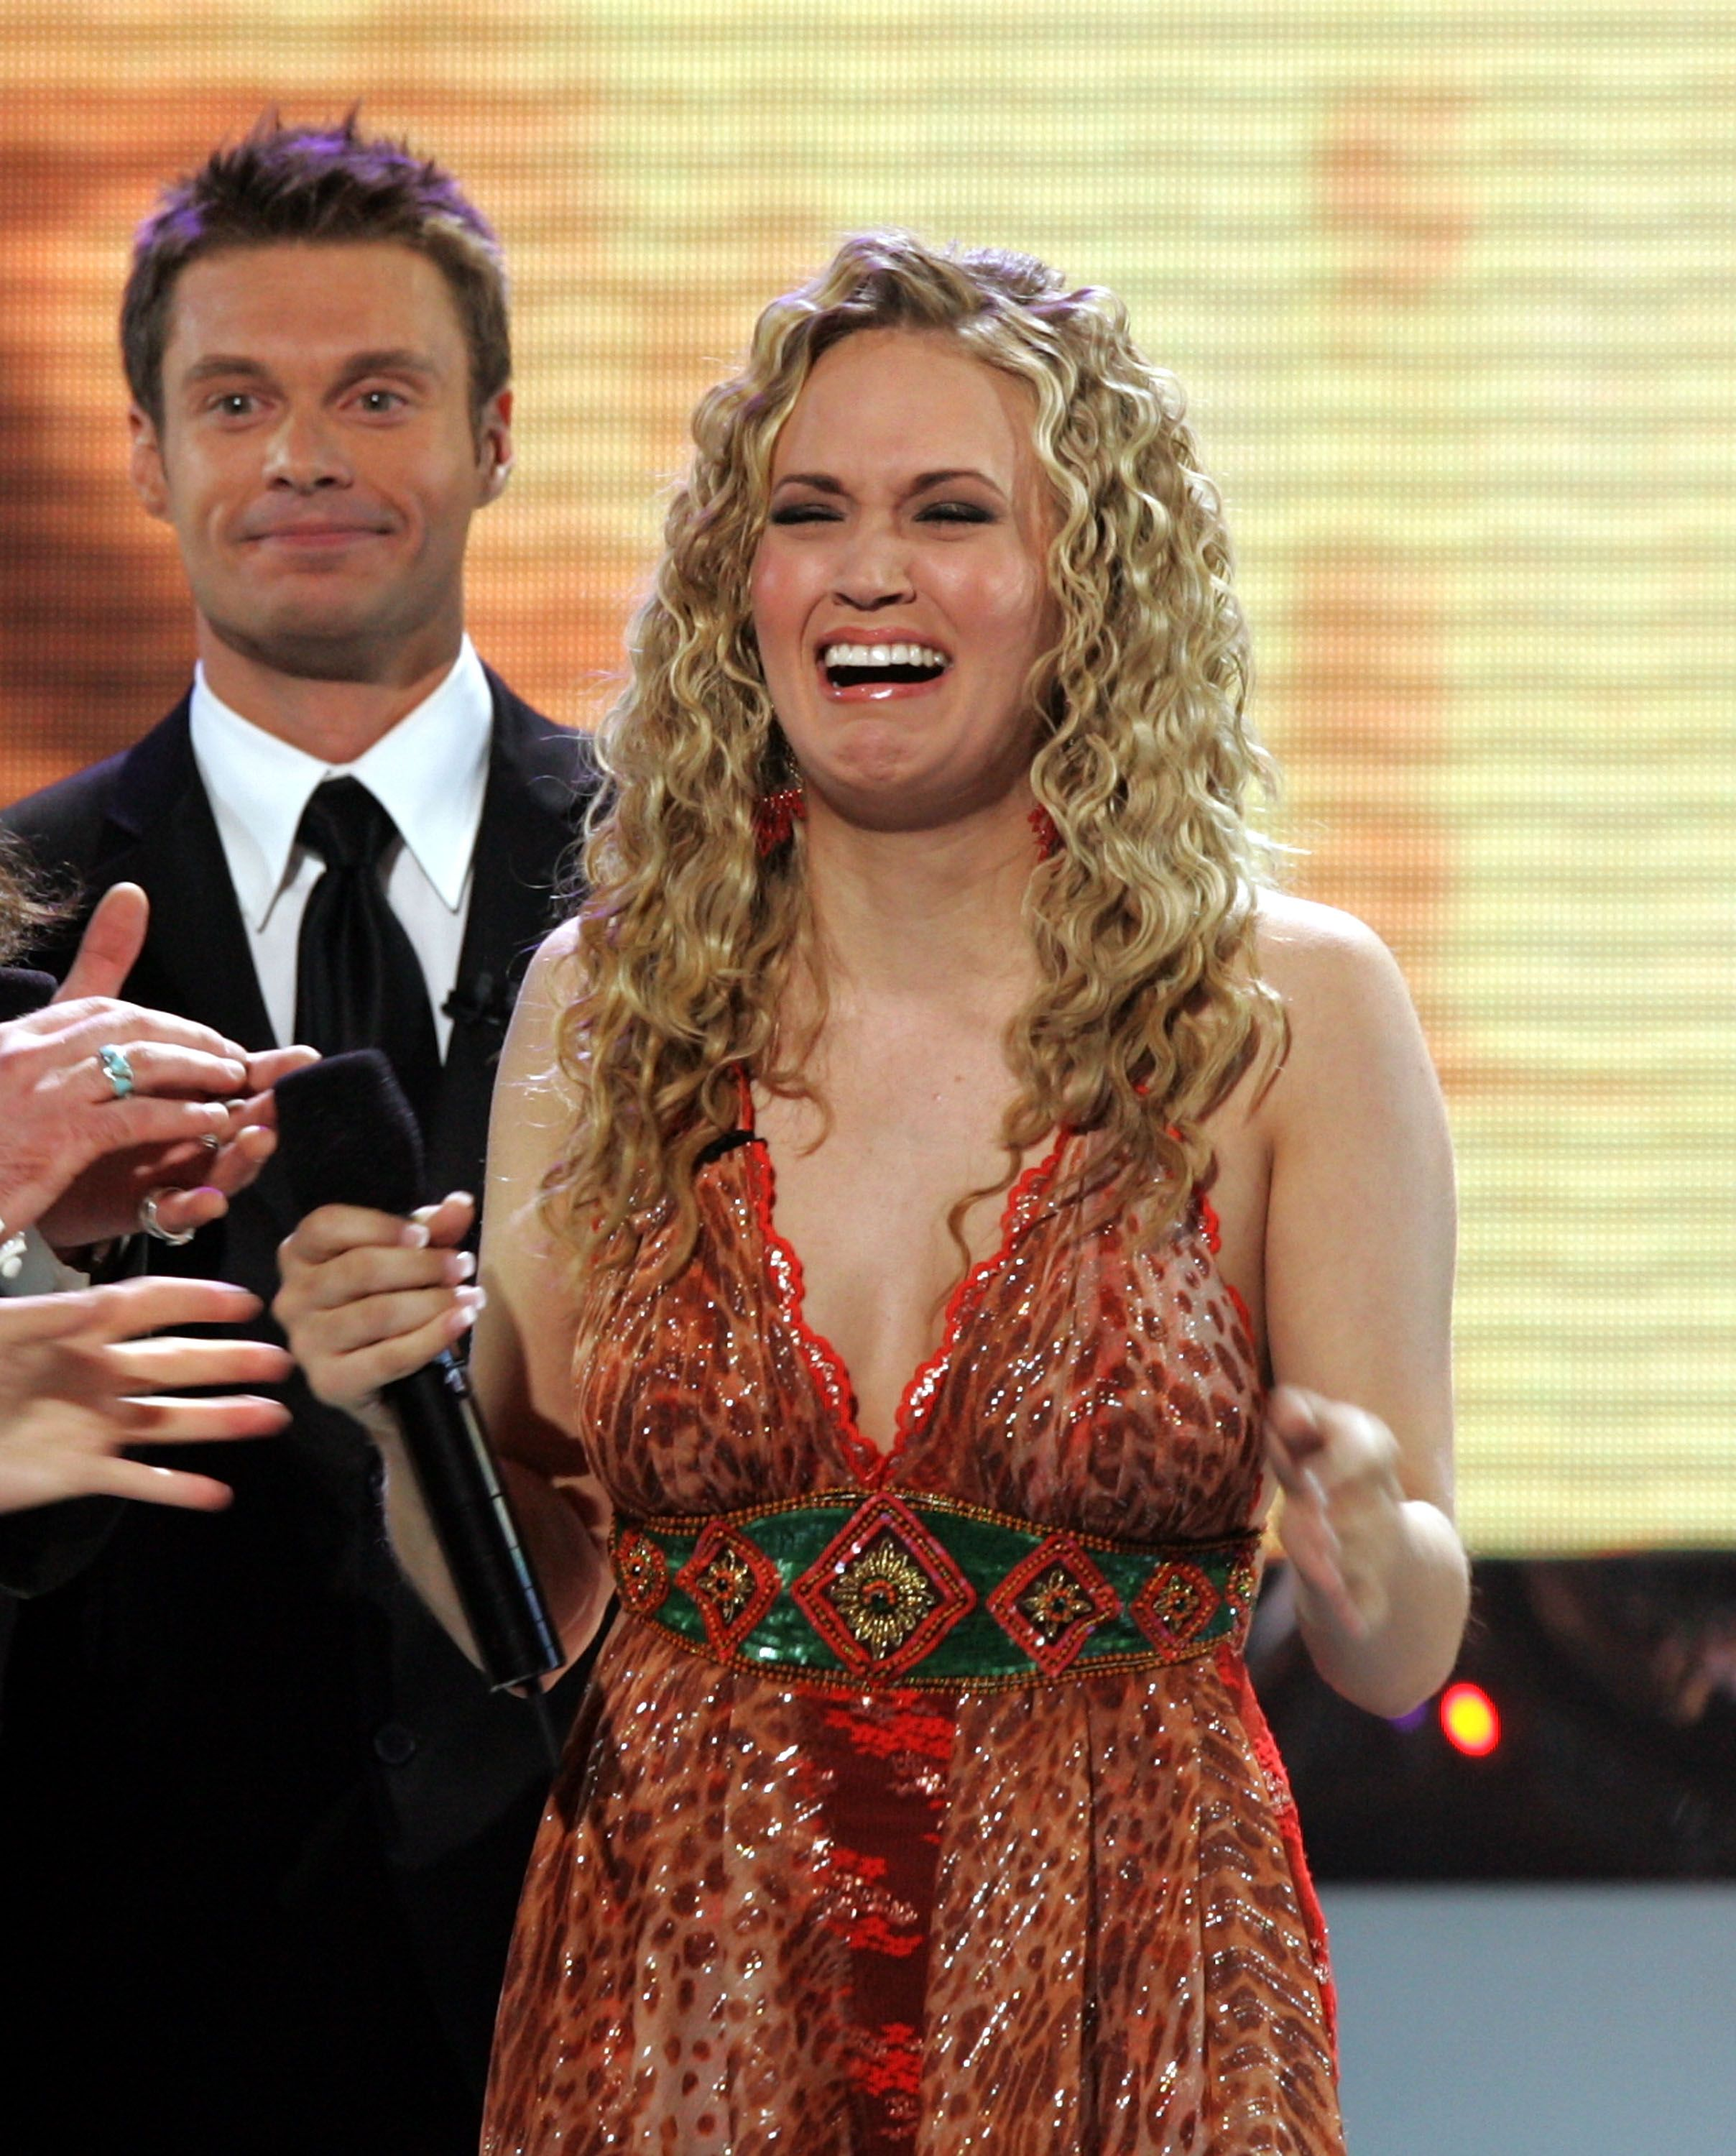 Carrie Underwood wins American Idol 2005| Photo: Getty Images